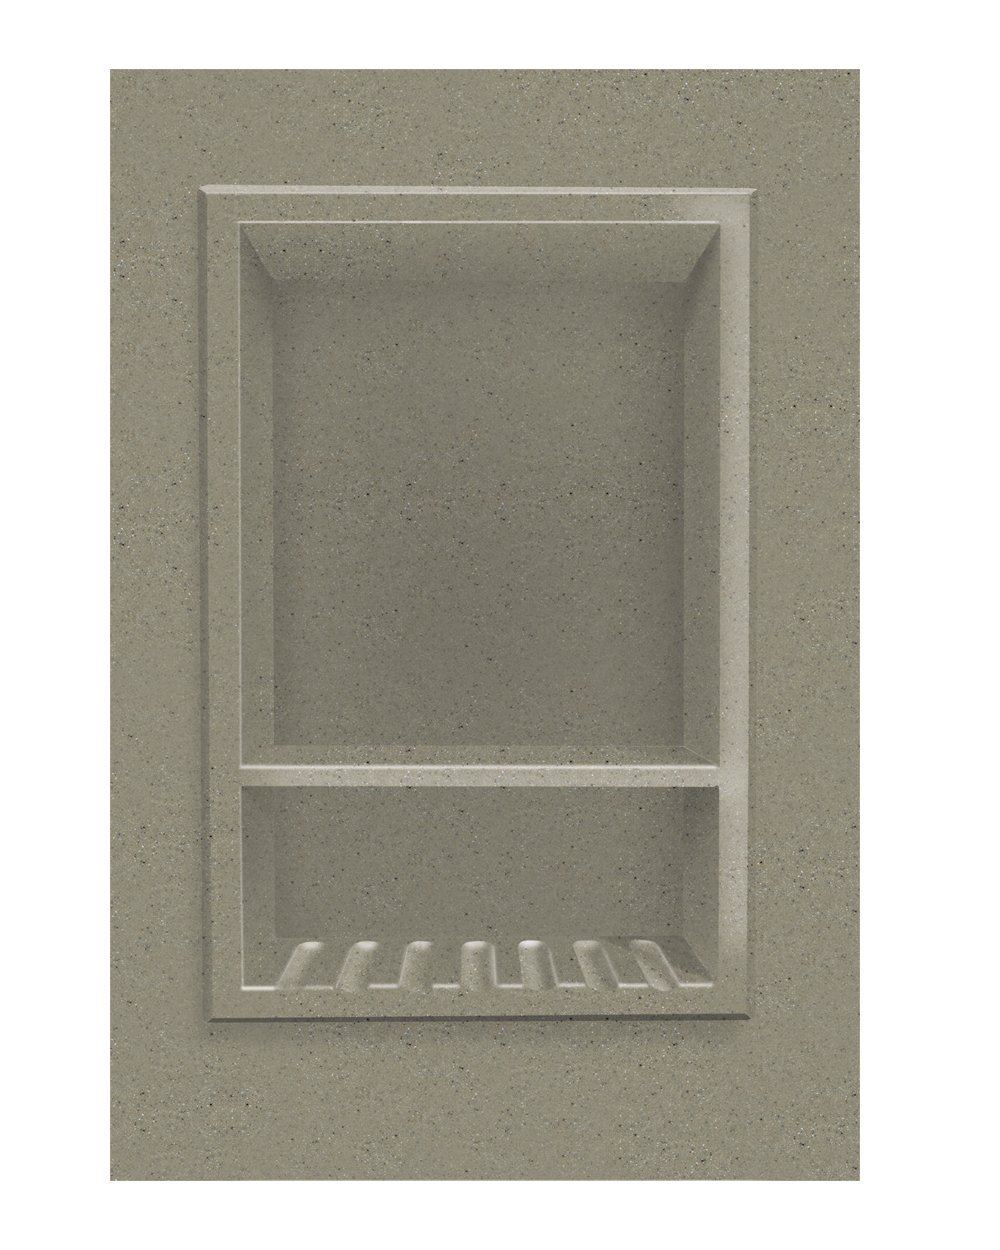 Transolid ACCESS0003-A3 Decor 10 x 15-Inch Recessed Shampoo Caddy, Peppered Sage by Transolid